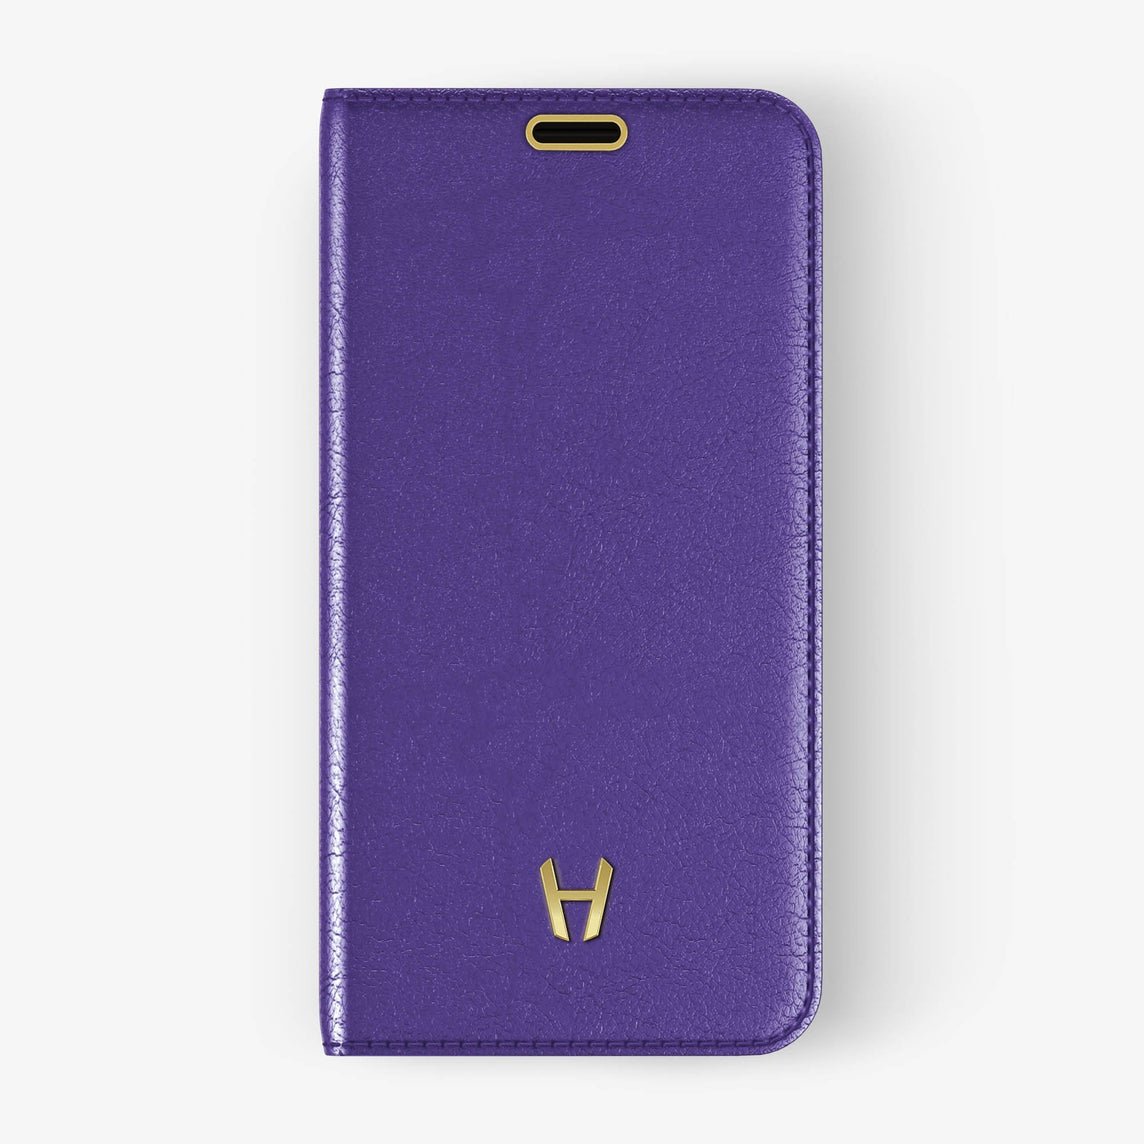 Calfskin Folio Case iPhone X/Xs | Violet - Yellow Gold without-personalization